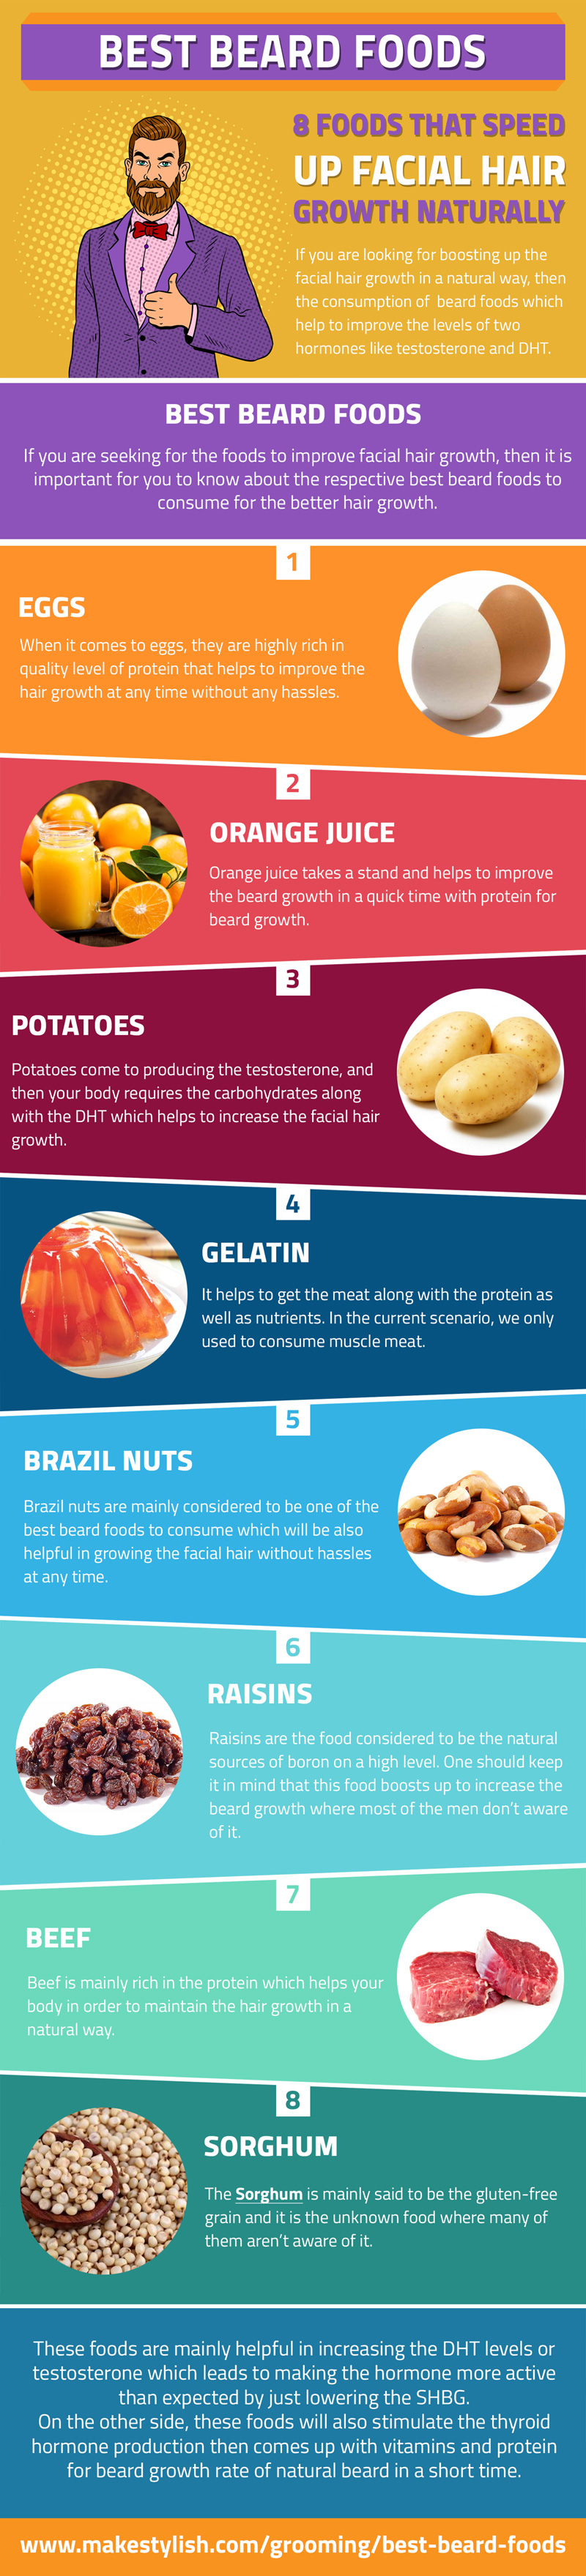 Best Beard Foods infographic